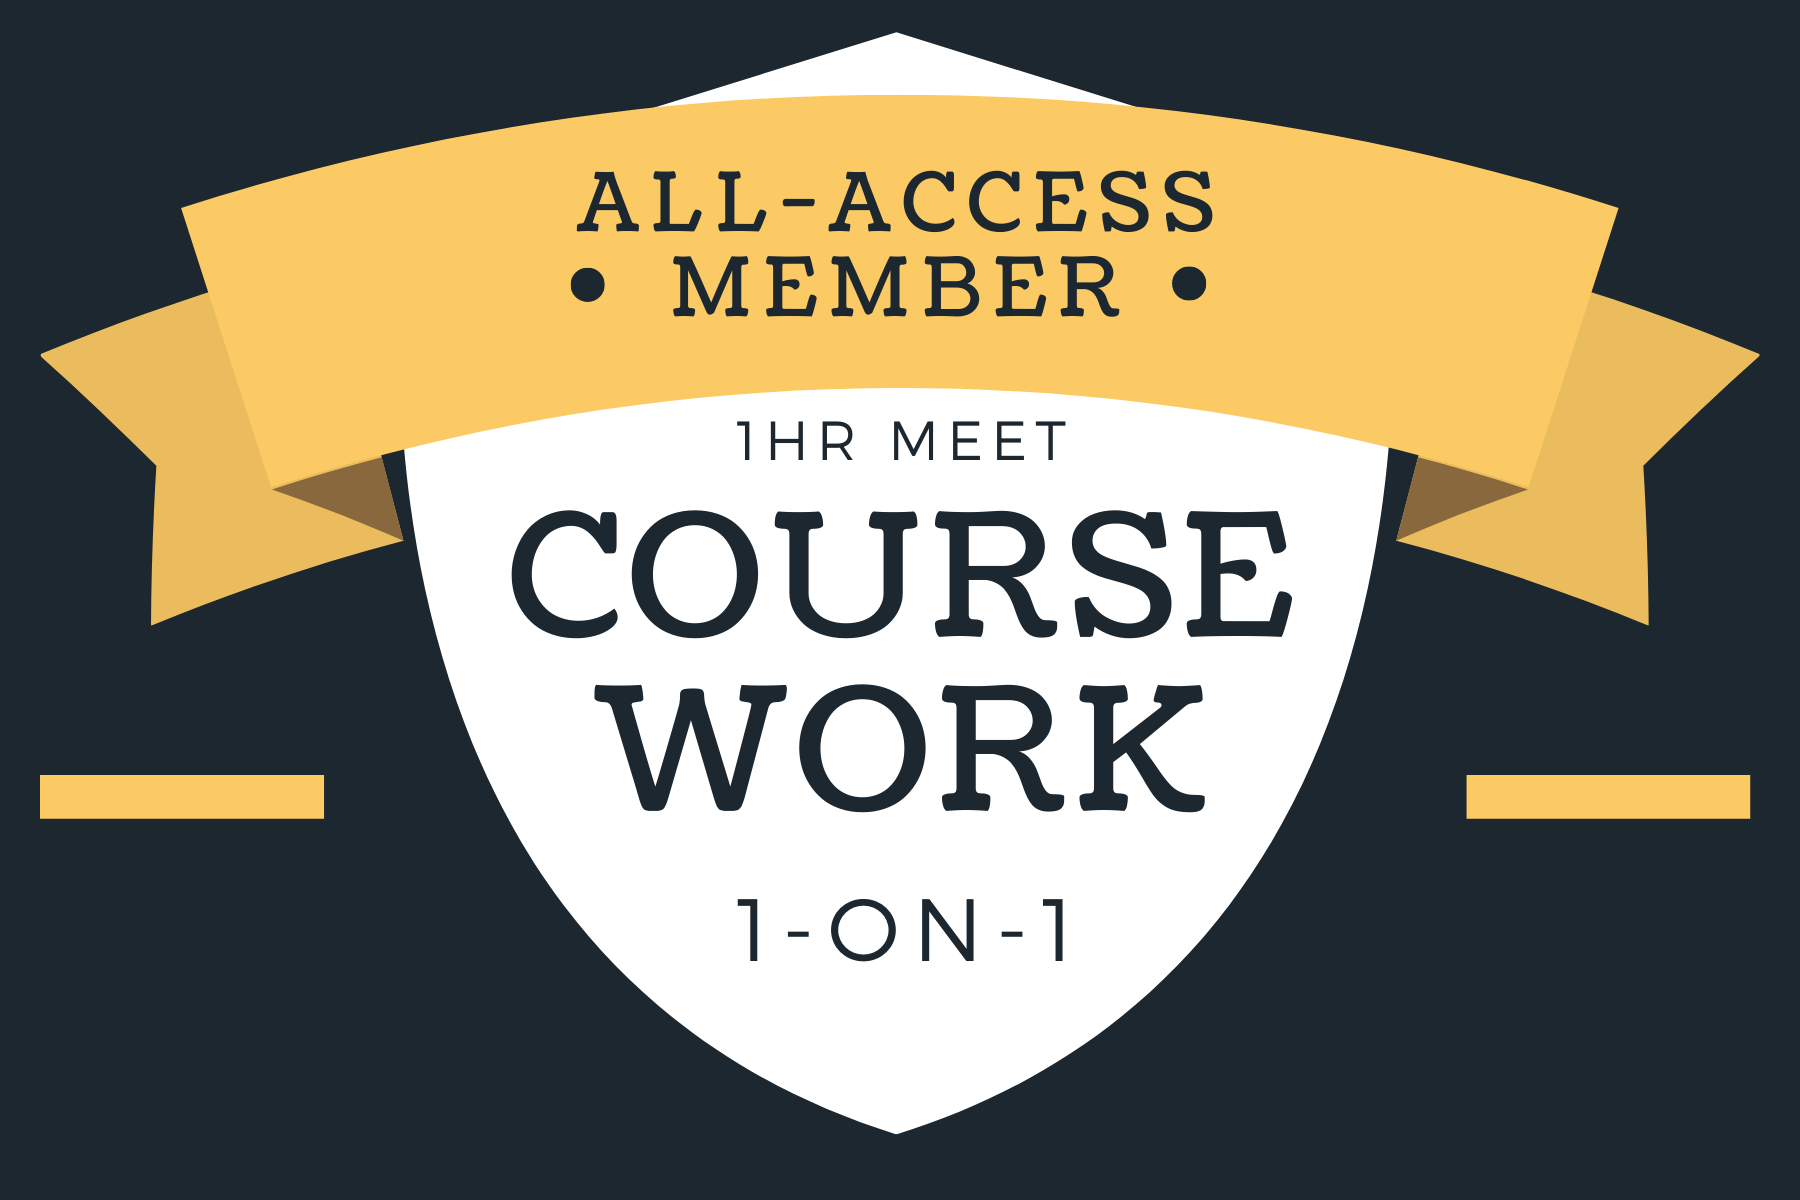 All-Access Course Work 1-on-1